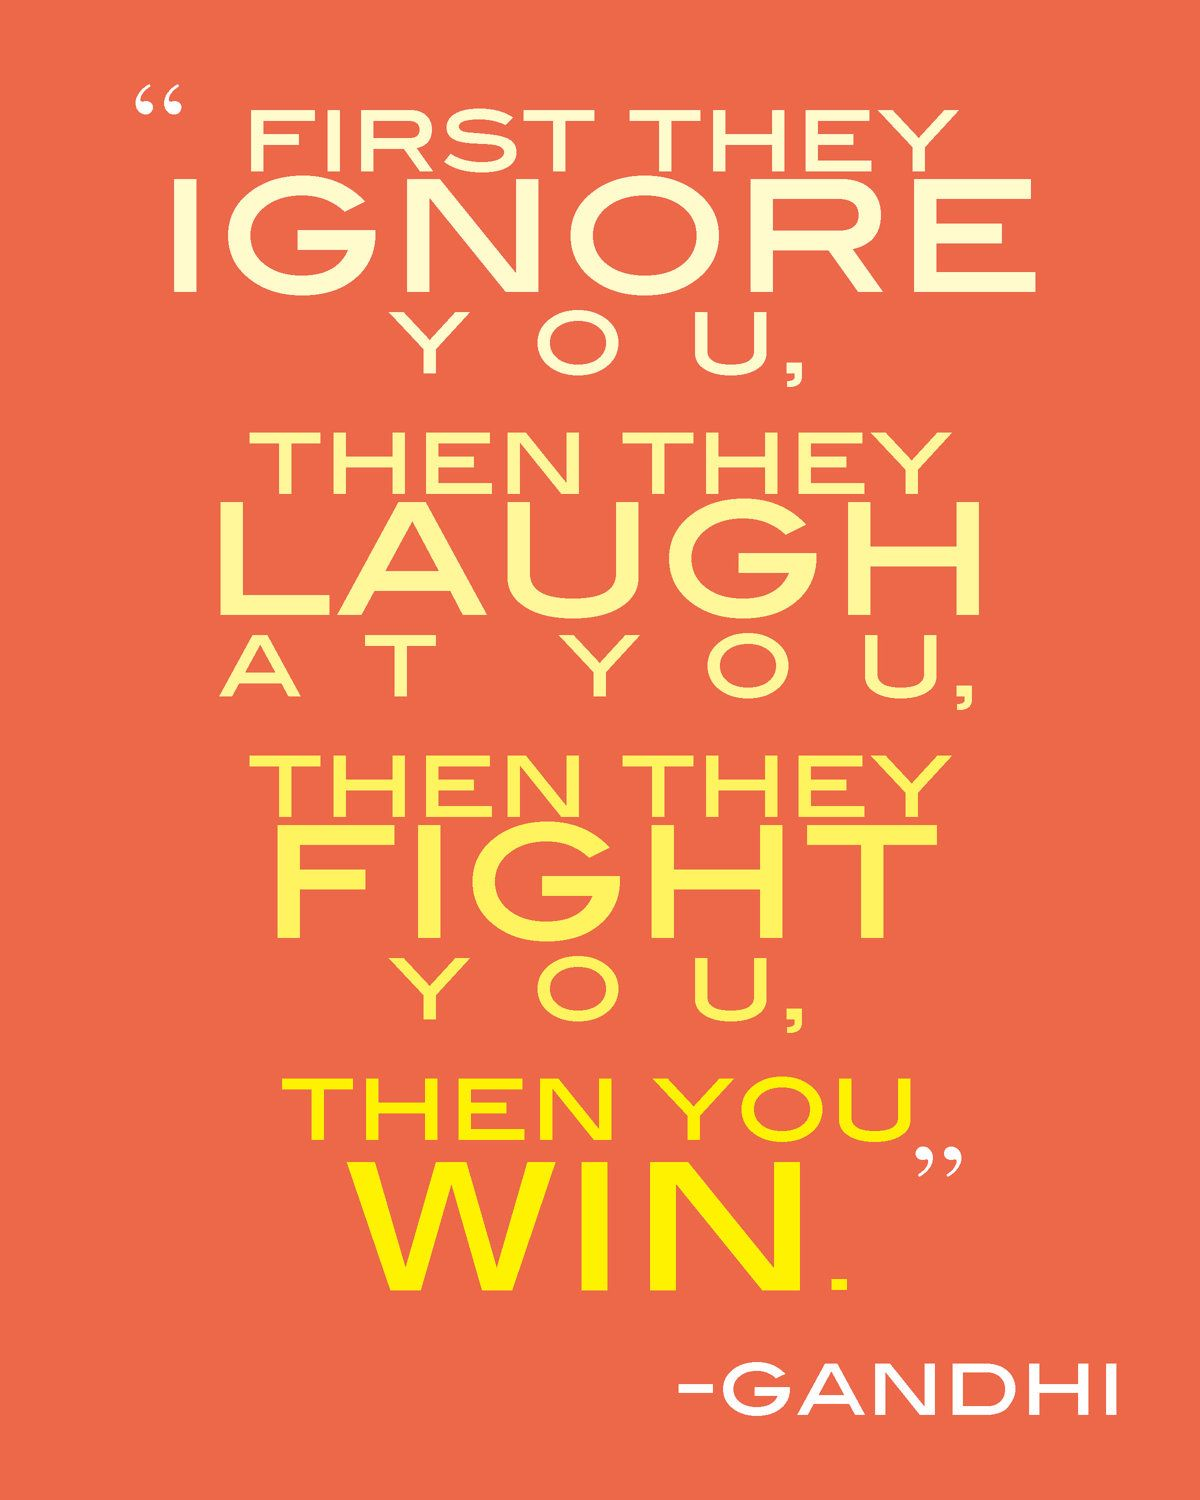 First They Ignore You Then They Laugh At You Then They Fight You And Then You Win Mahatma Gandhi